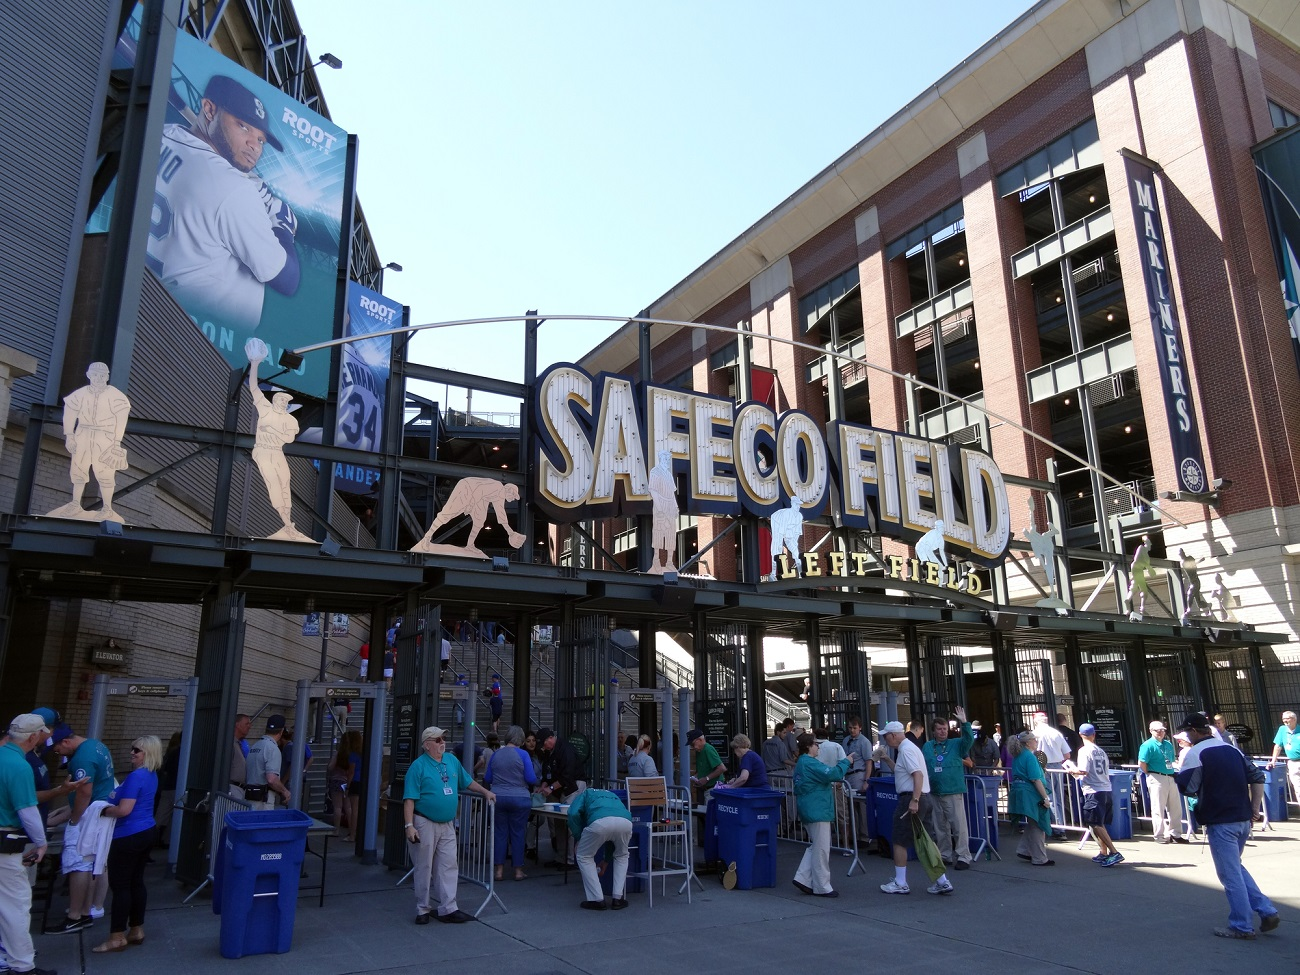 People Entering Safeco Field